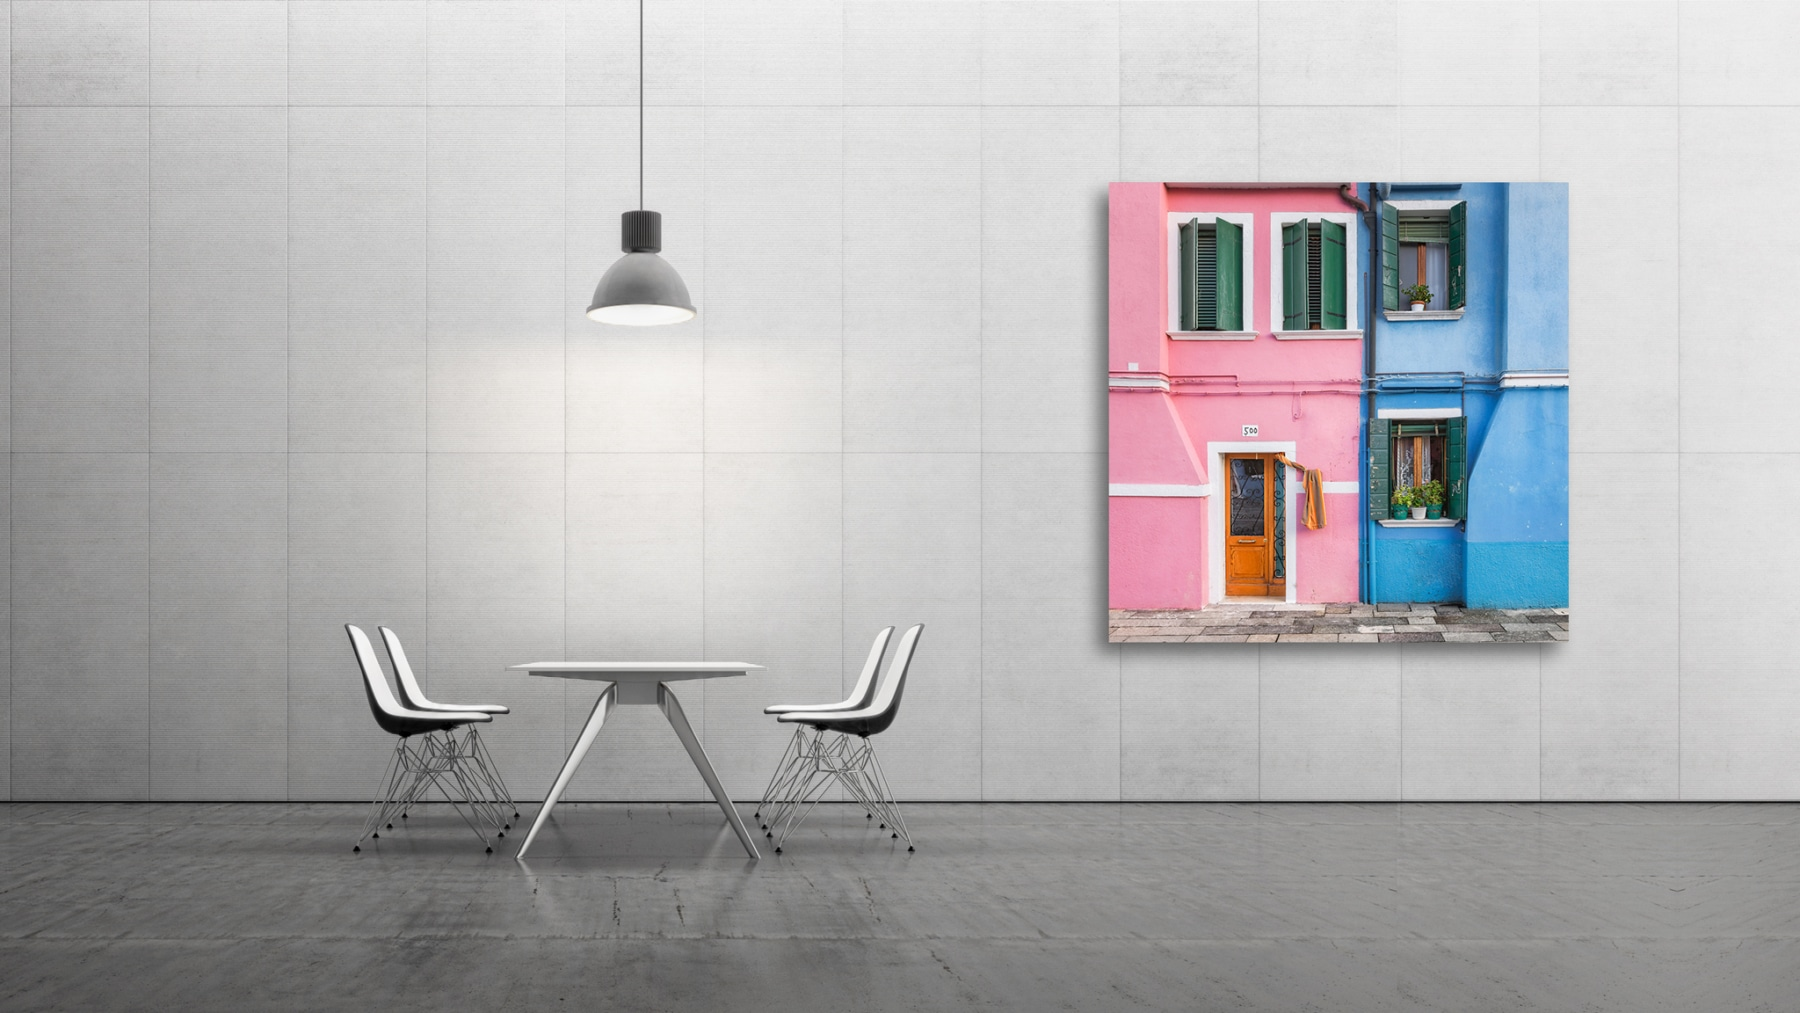 pale pink and pale blue, Fine Art, Color, Farbe, Italy, Venedig, Burano, Gerry Pacher